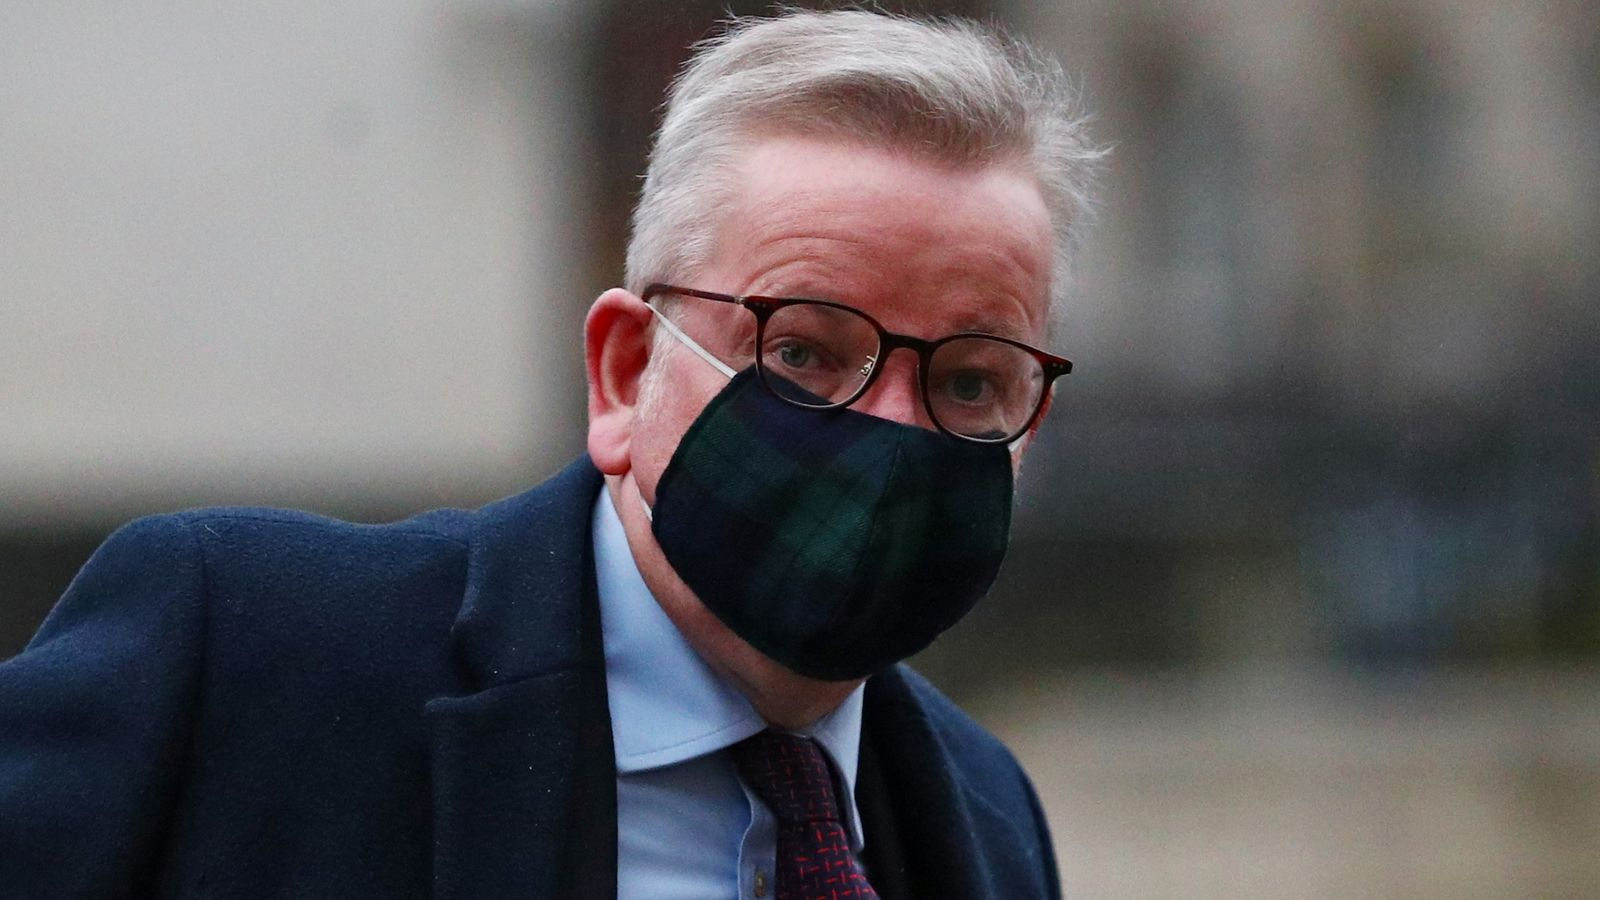 COVID-19: Michael Gove visits Israel to study country's 'green pass' as he mulls vaccine passport options